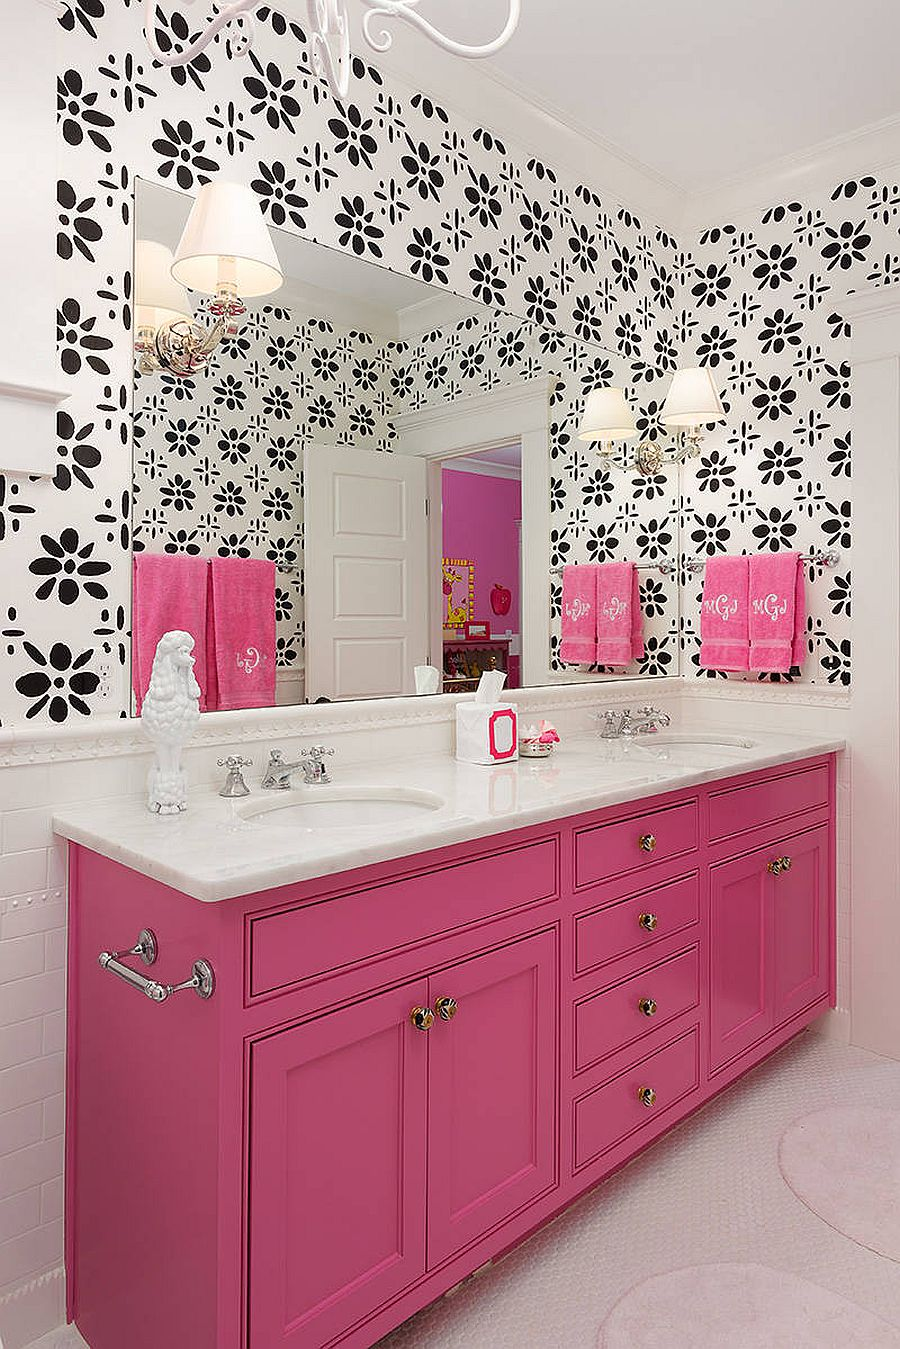 Classy blend of black, white and pink in the bathroom